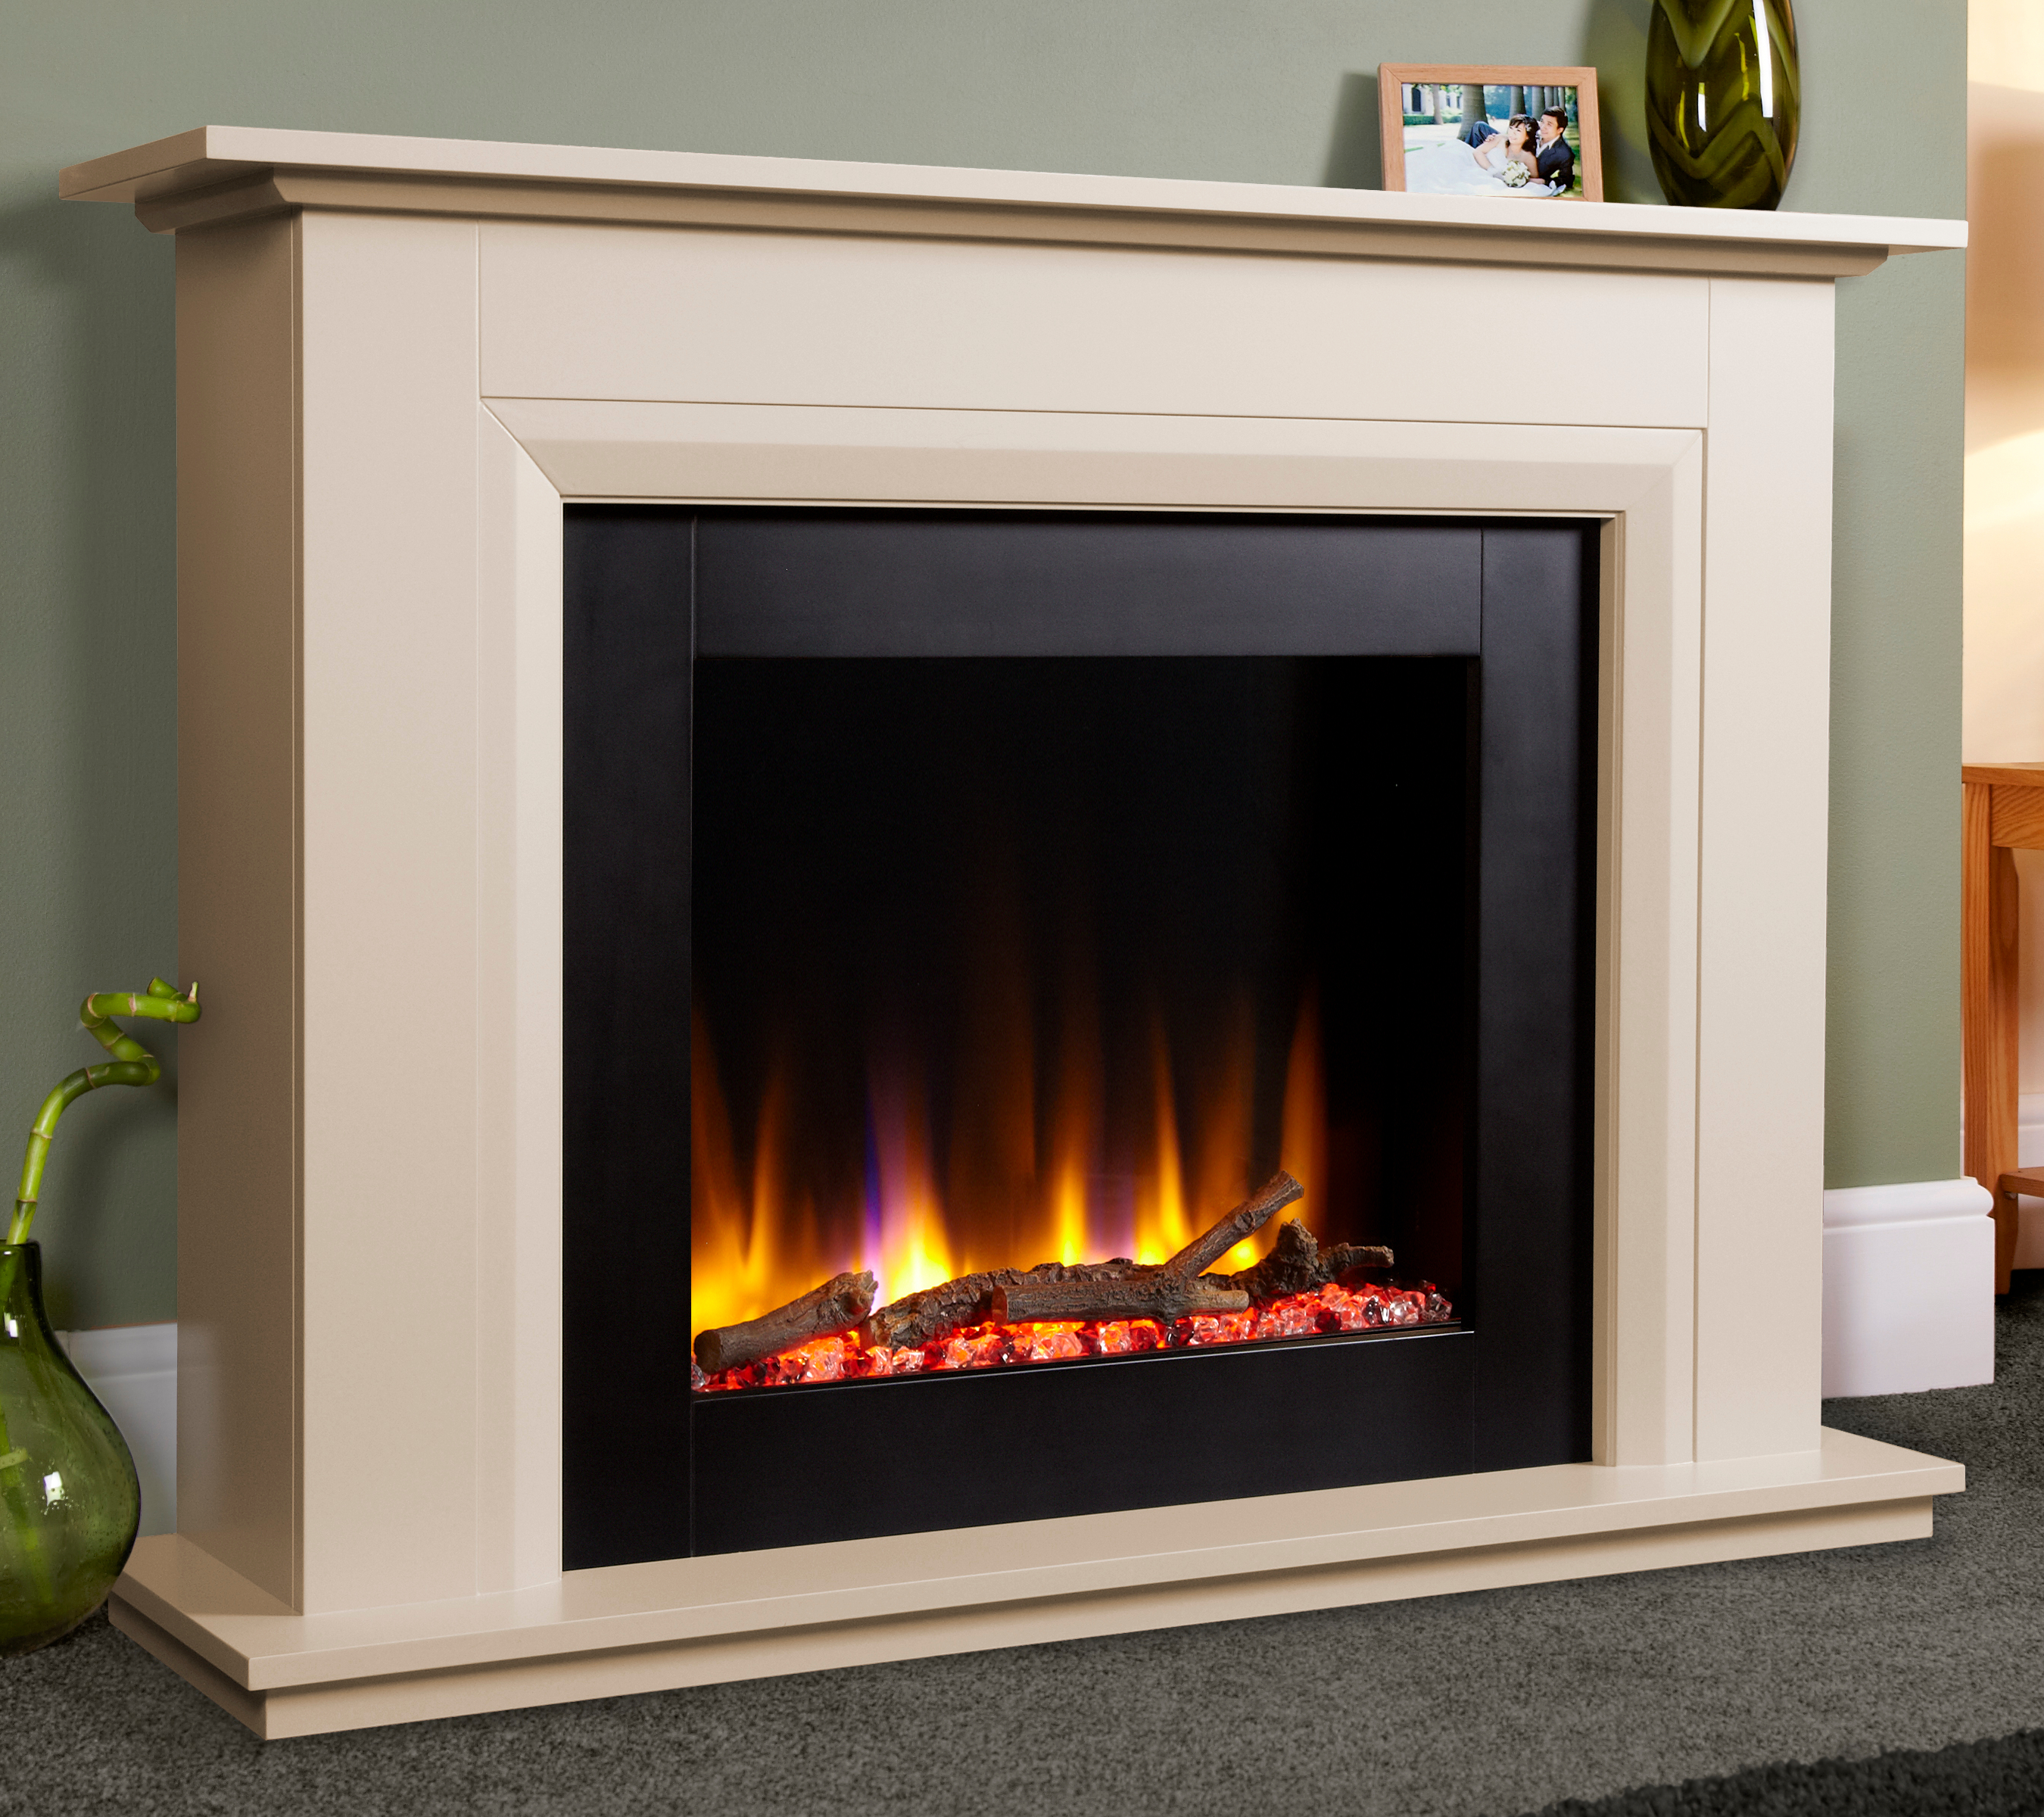 Celsi Ultiflame Vr 22 Elara Electric Fireplace Suite In Smooth Cream Simply Stoves